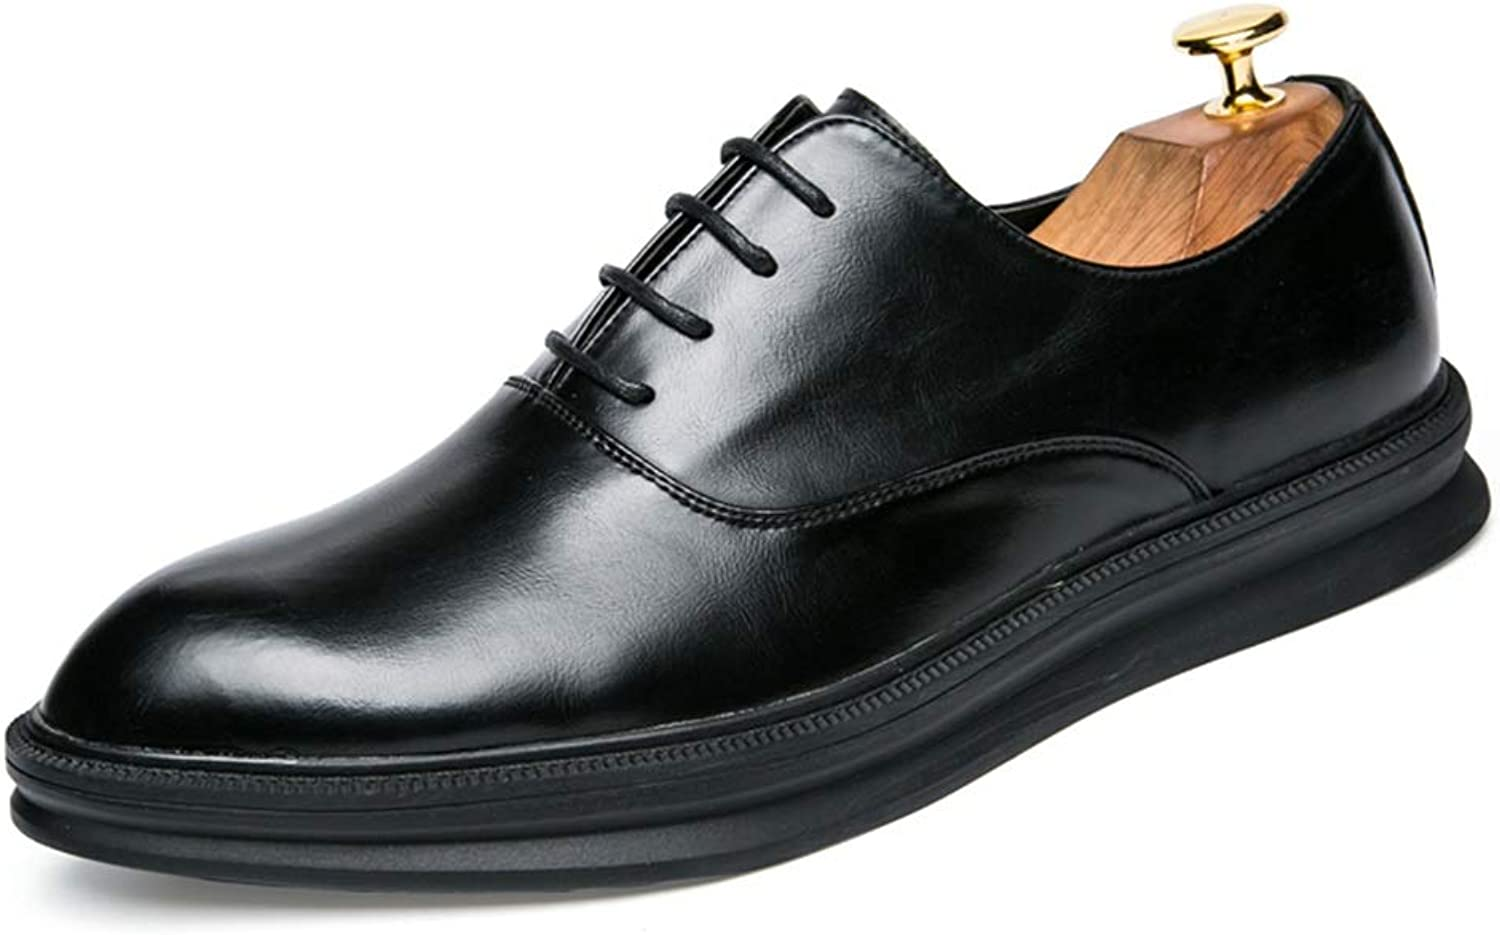 CHENXD shoes, Men's Classic Simple Pure color Business Oxford Casual Comfortable Sole Microfiber Leather Formal shoes